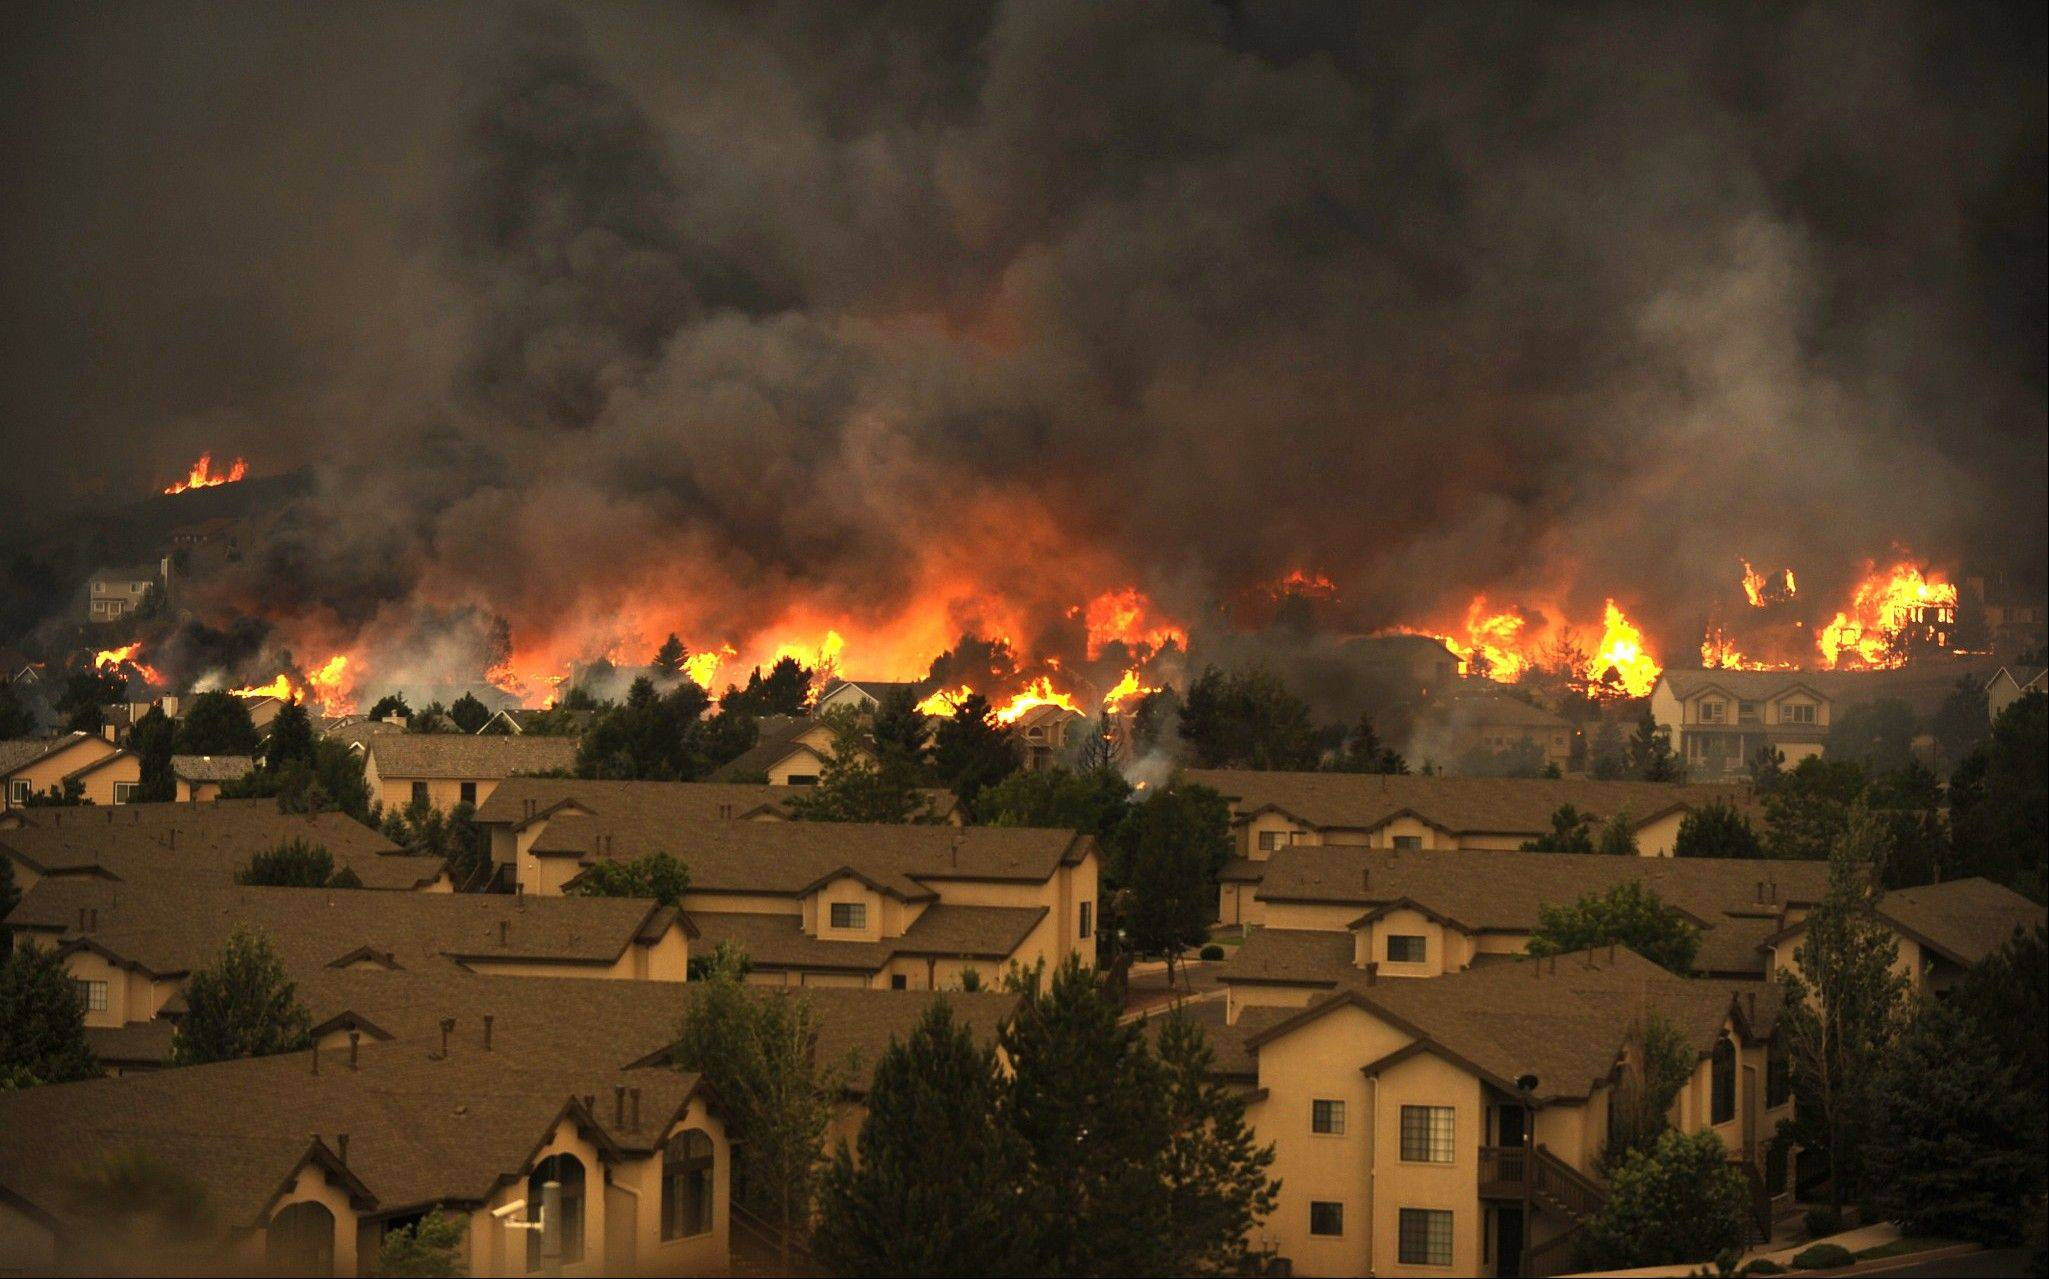 An entire neighborhood burns near the foothills of Colorado Springs, Colo., Tuesday, June 26, 2012. Colorado has endured nearly a week of 100-plus-degree days and low humidity, sapping moisture from timber and grass, creating a devastating formula for volatile wildfires across the state and punishing conditions for firefighters.